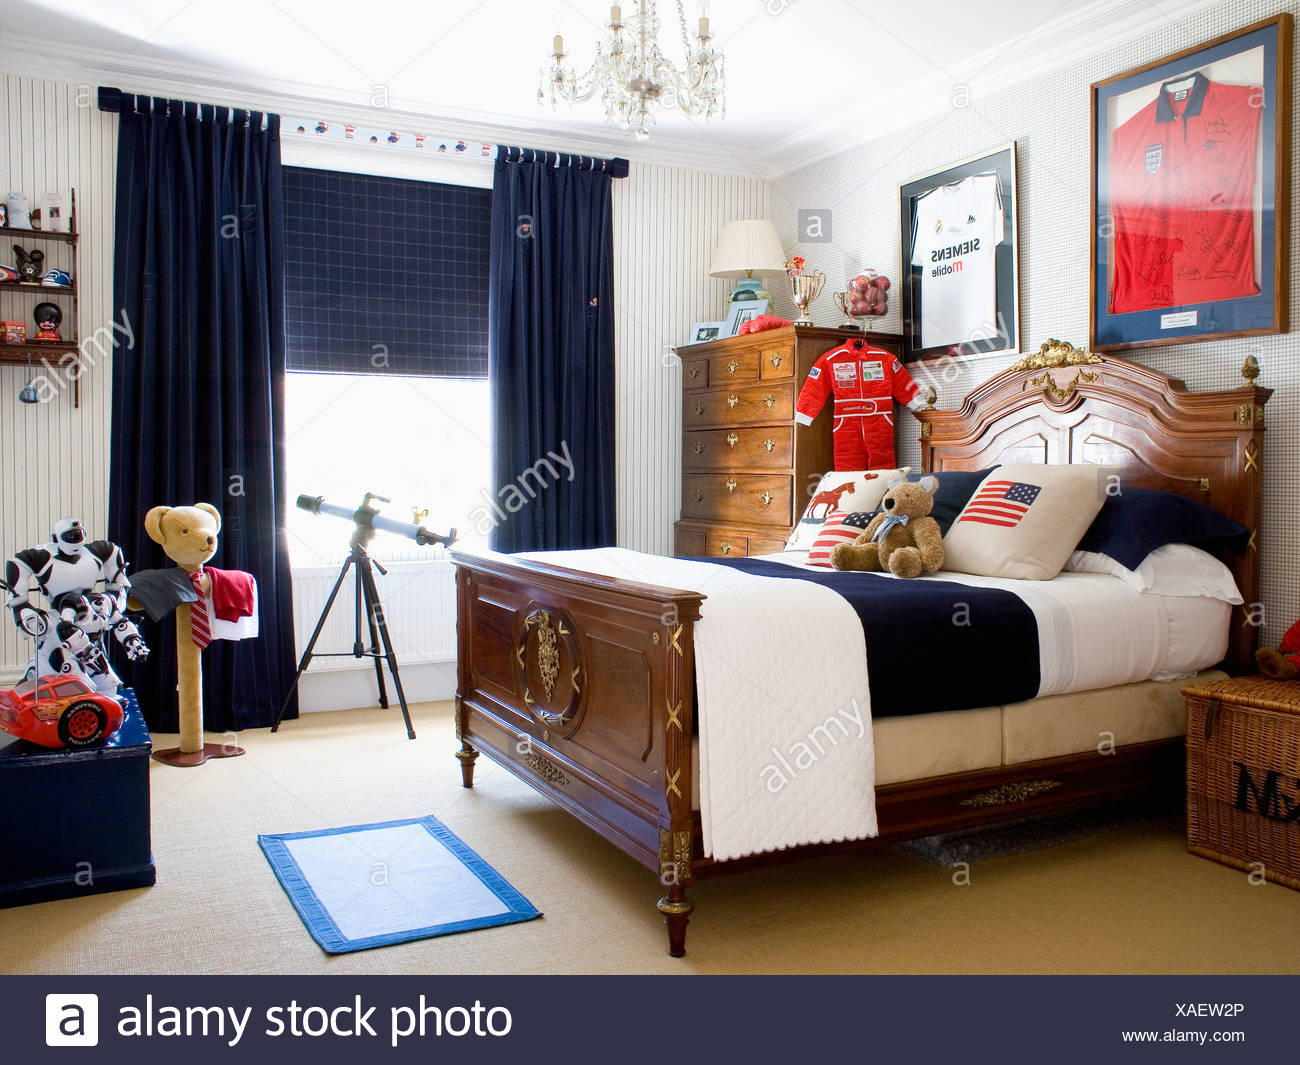 Framed Football Shirt On Wall Above Antique Mahogany Double Bed In Child S Bedroom With Black Curtains Stock Photo Alamy